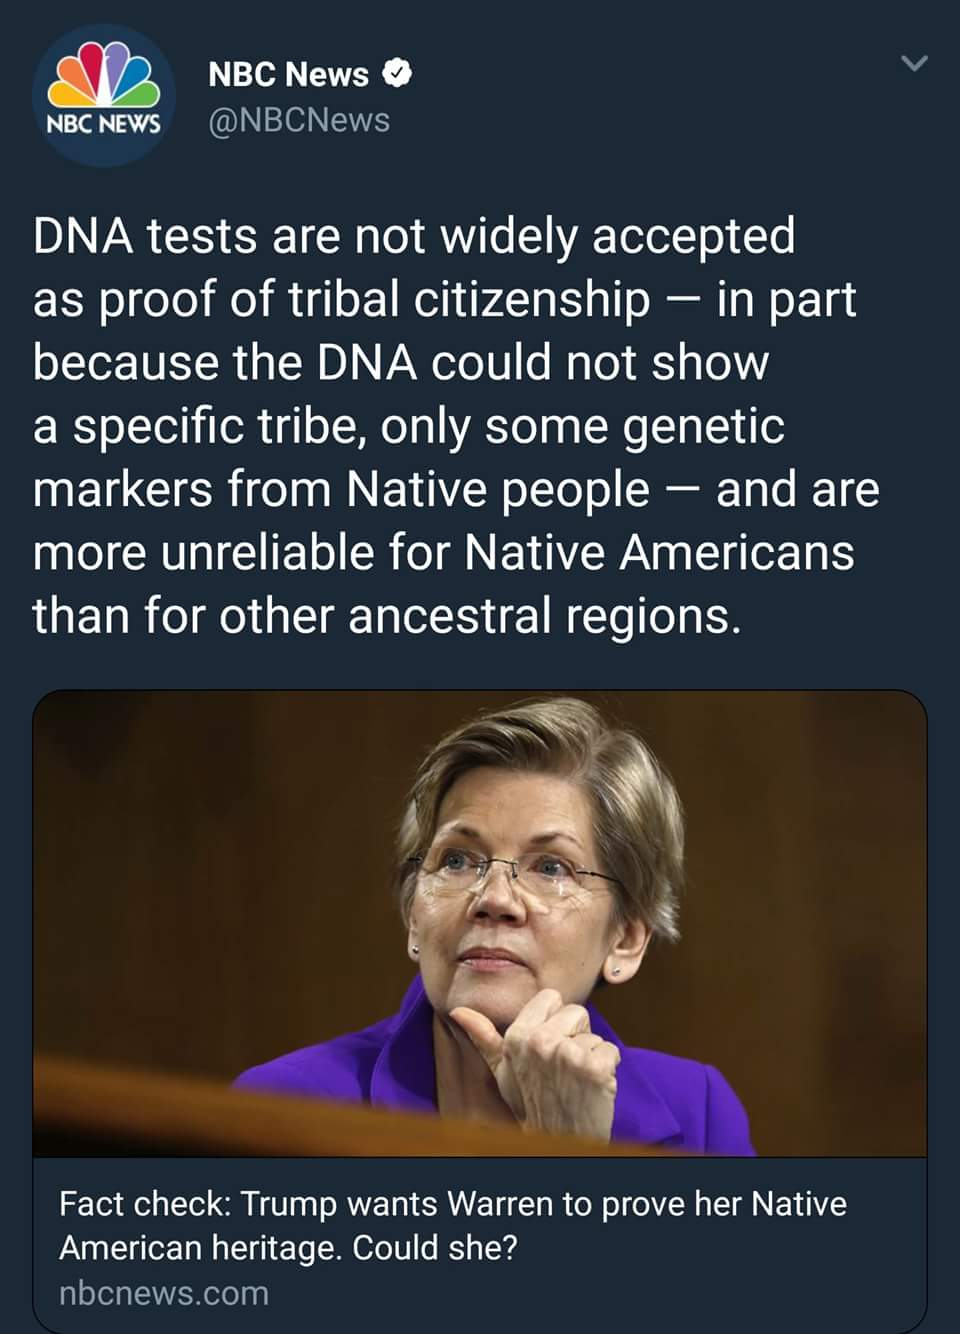 Nbc News Nbc News Qnbcnews Dna Tests Are Not Widely Accepted As Proof Of Tribal Citizenship